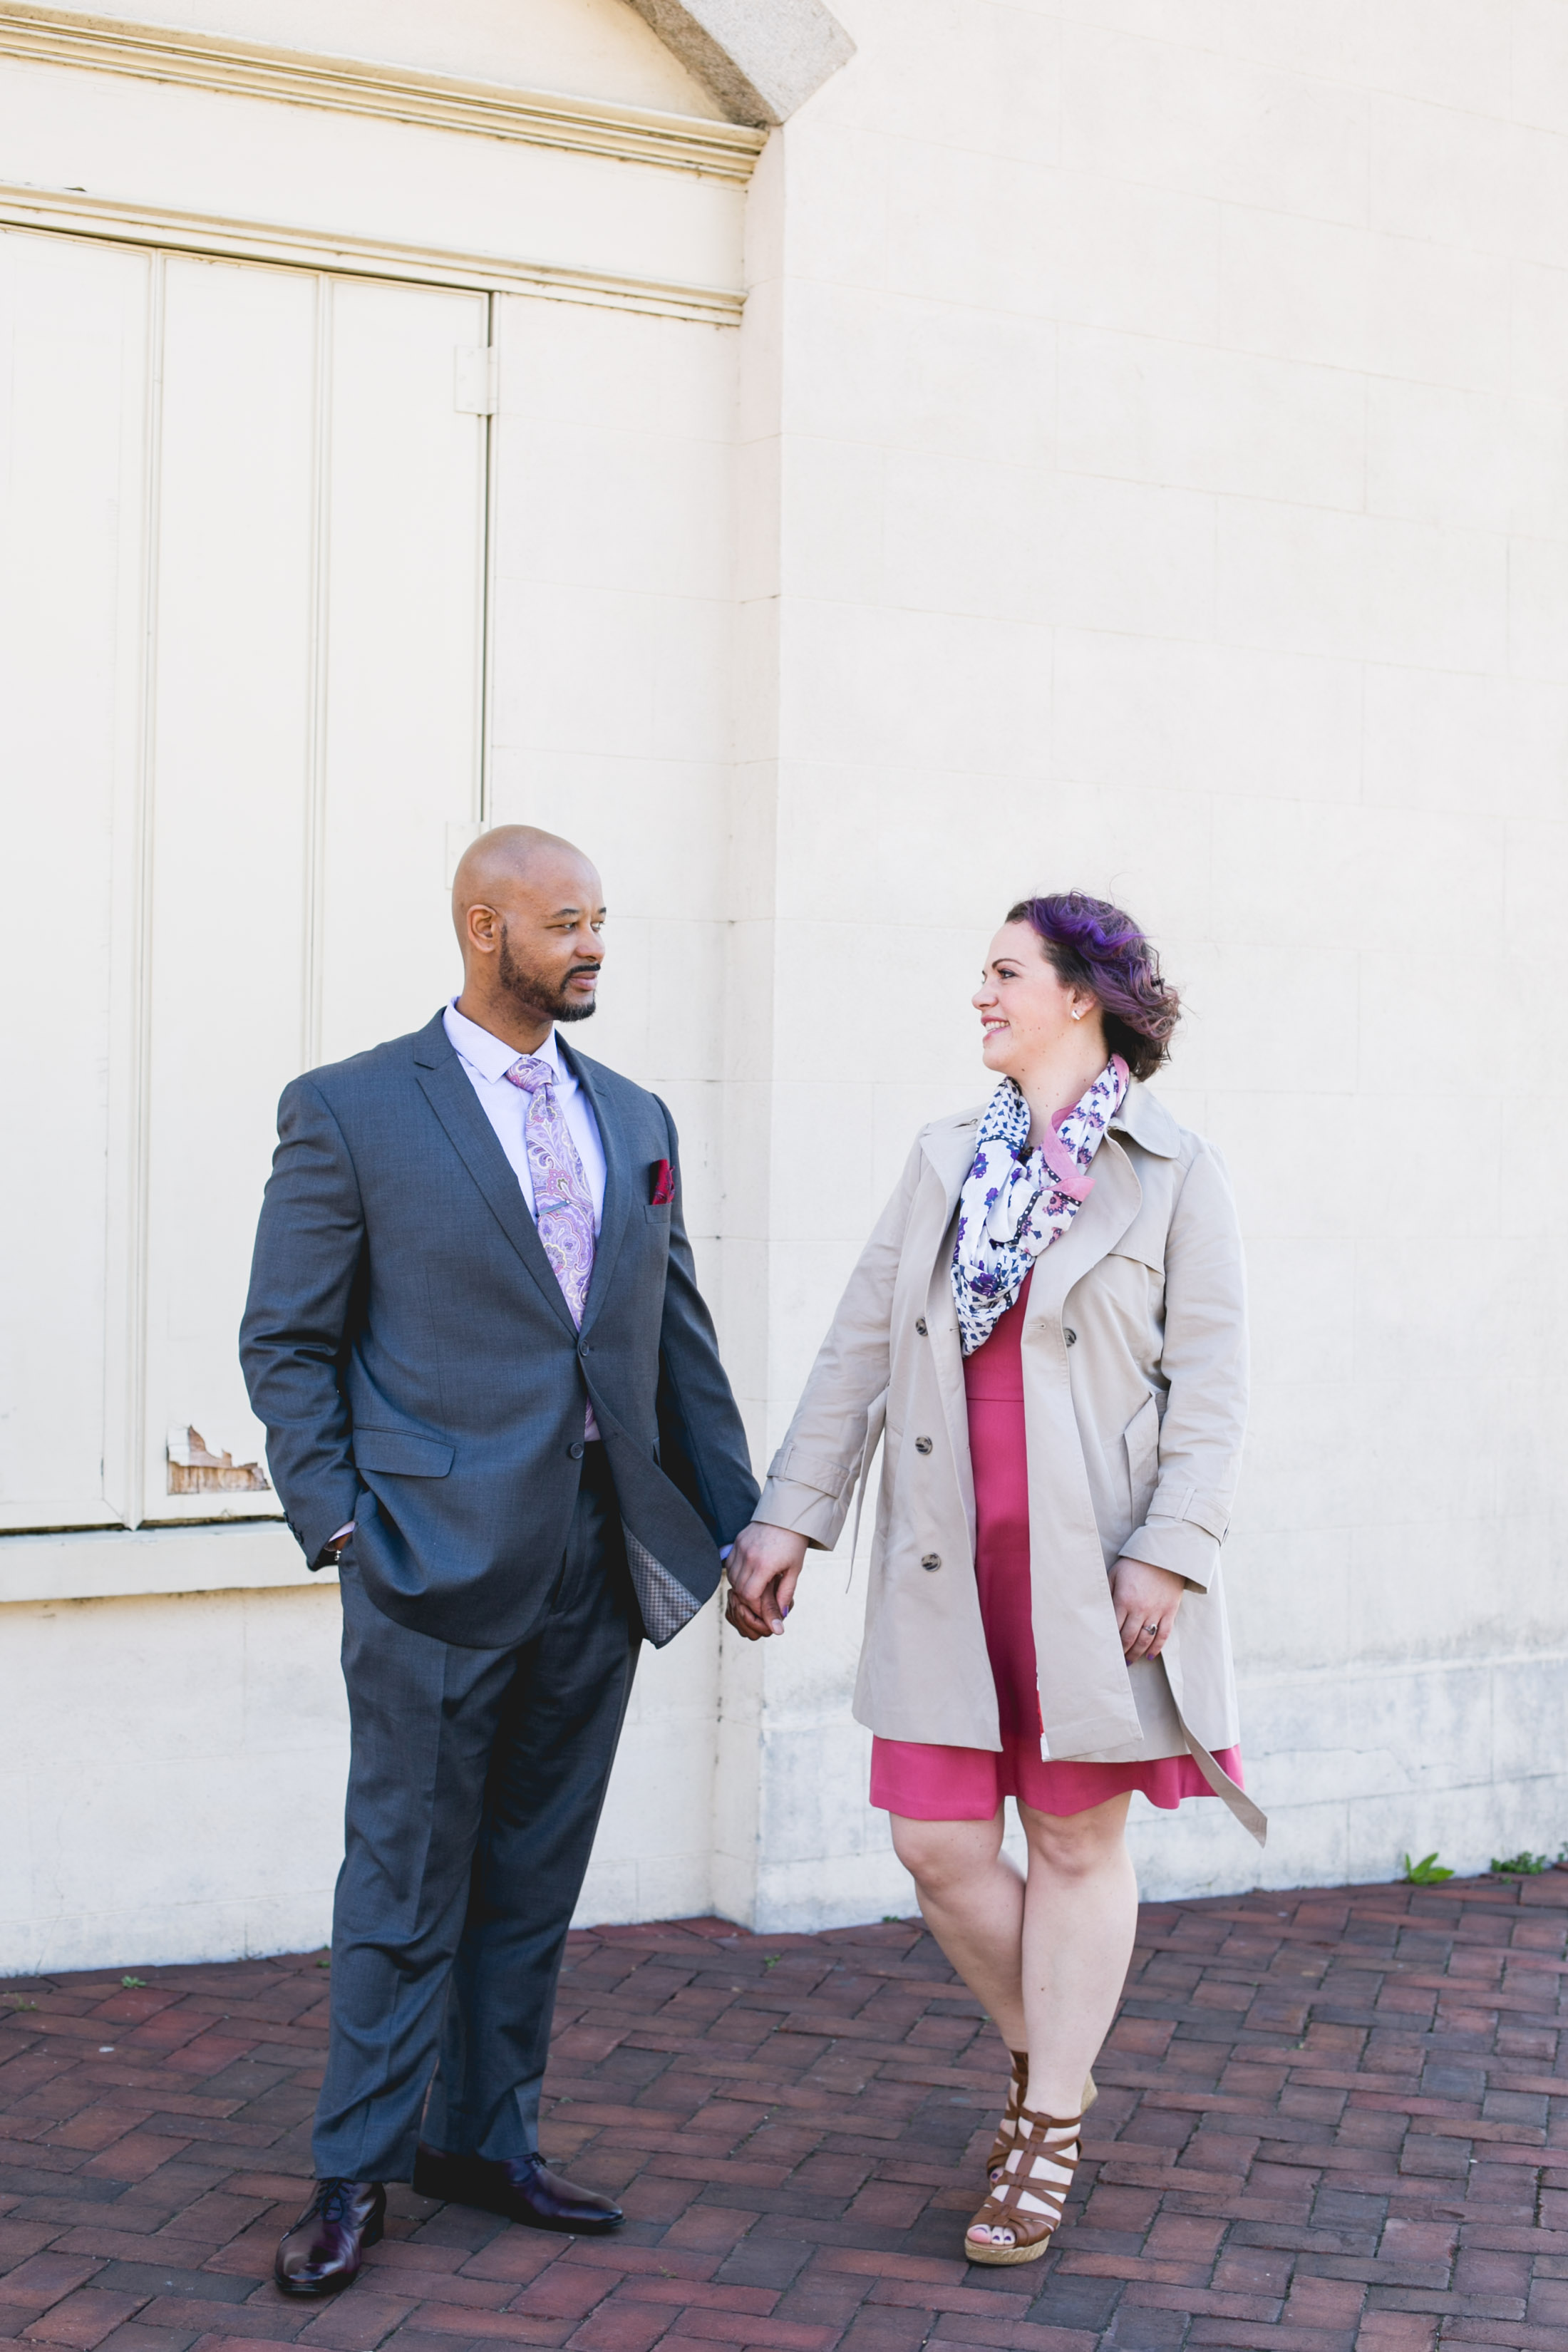 Interacial Philly Engagement Shoot